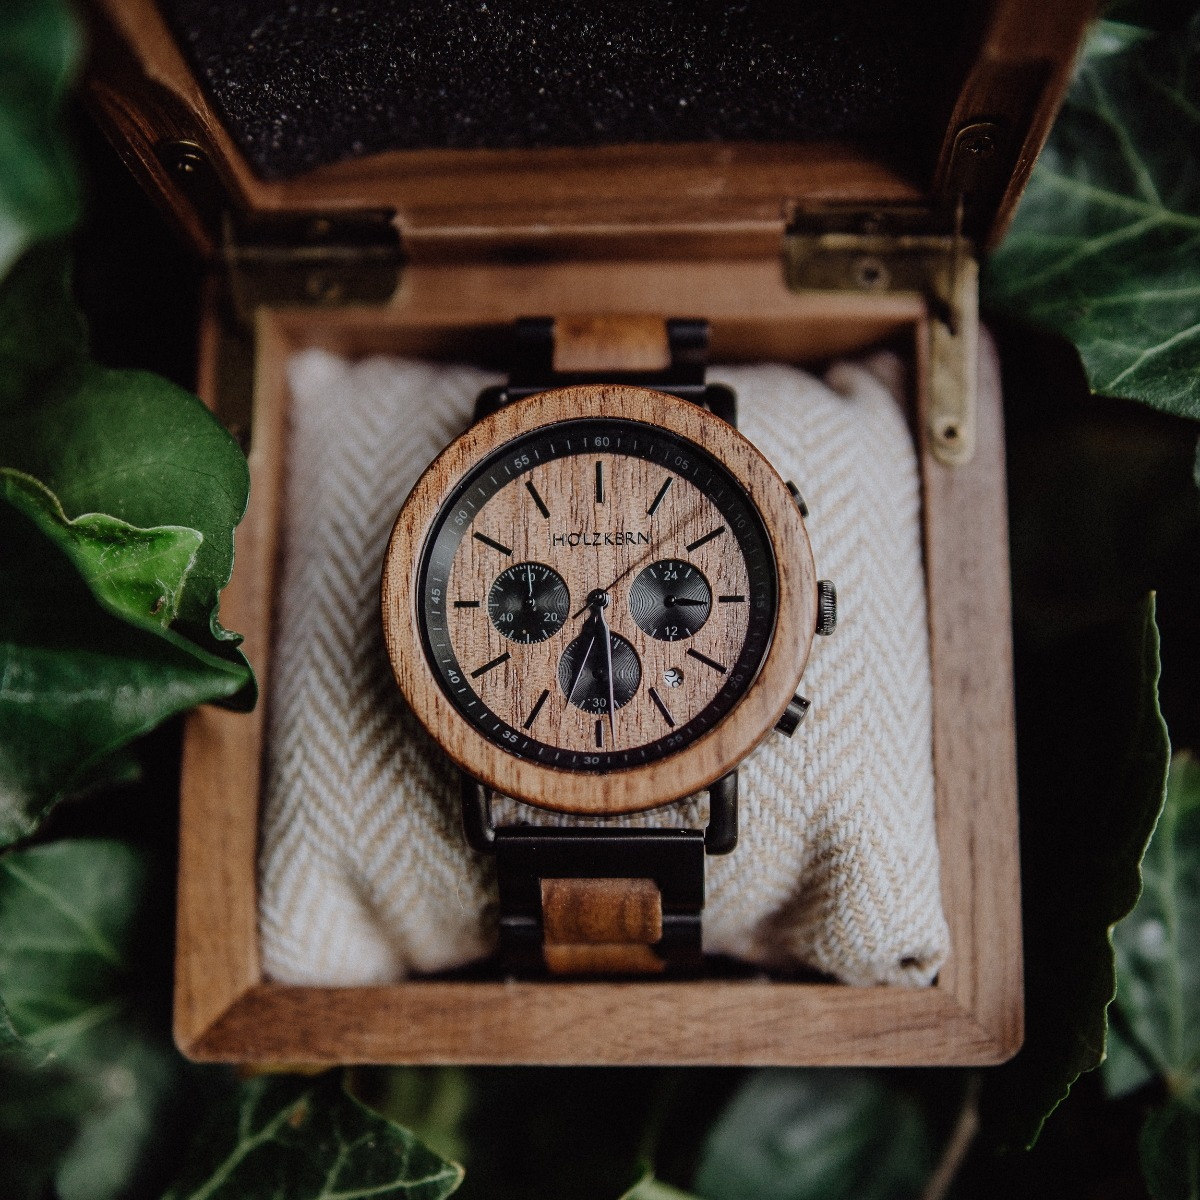 Dusk, a wood watch by Holzkern